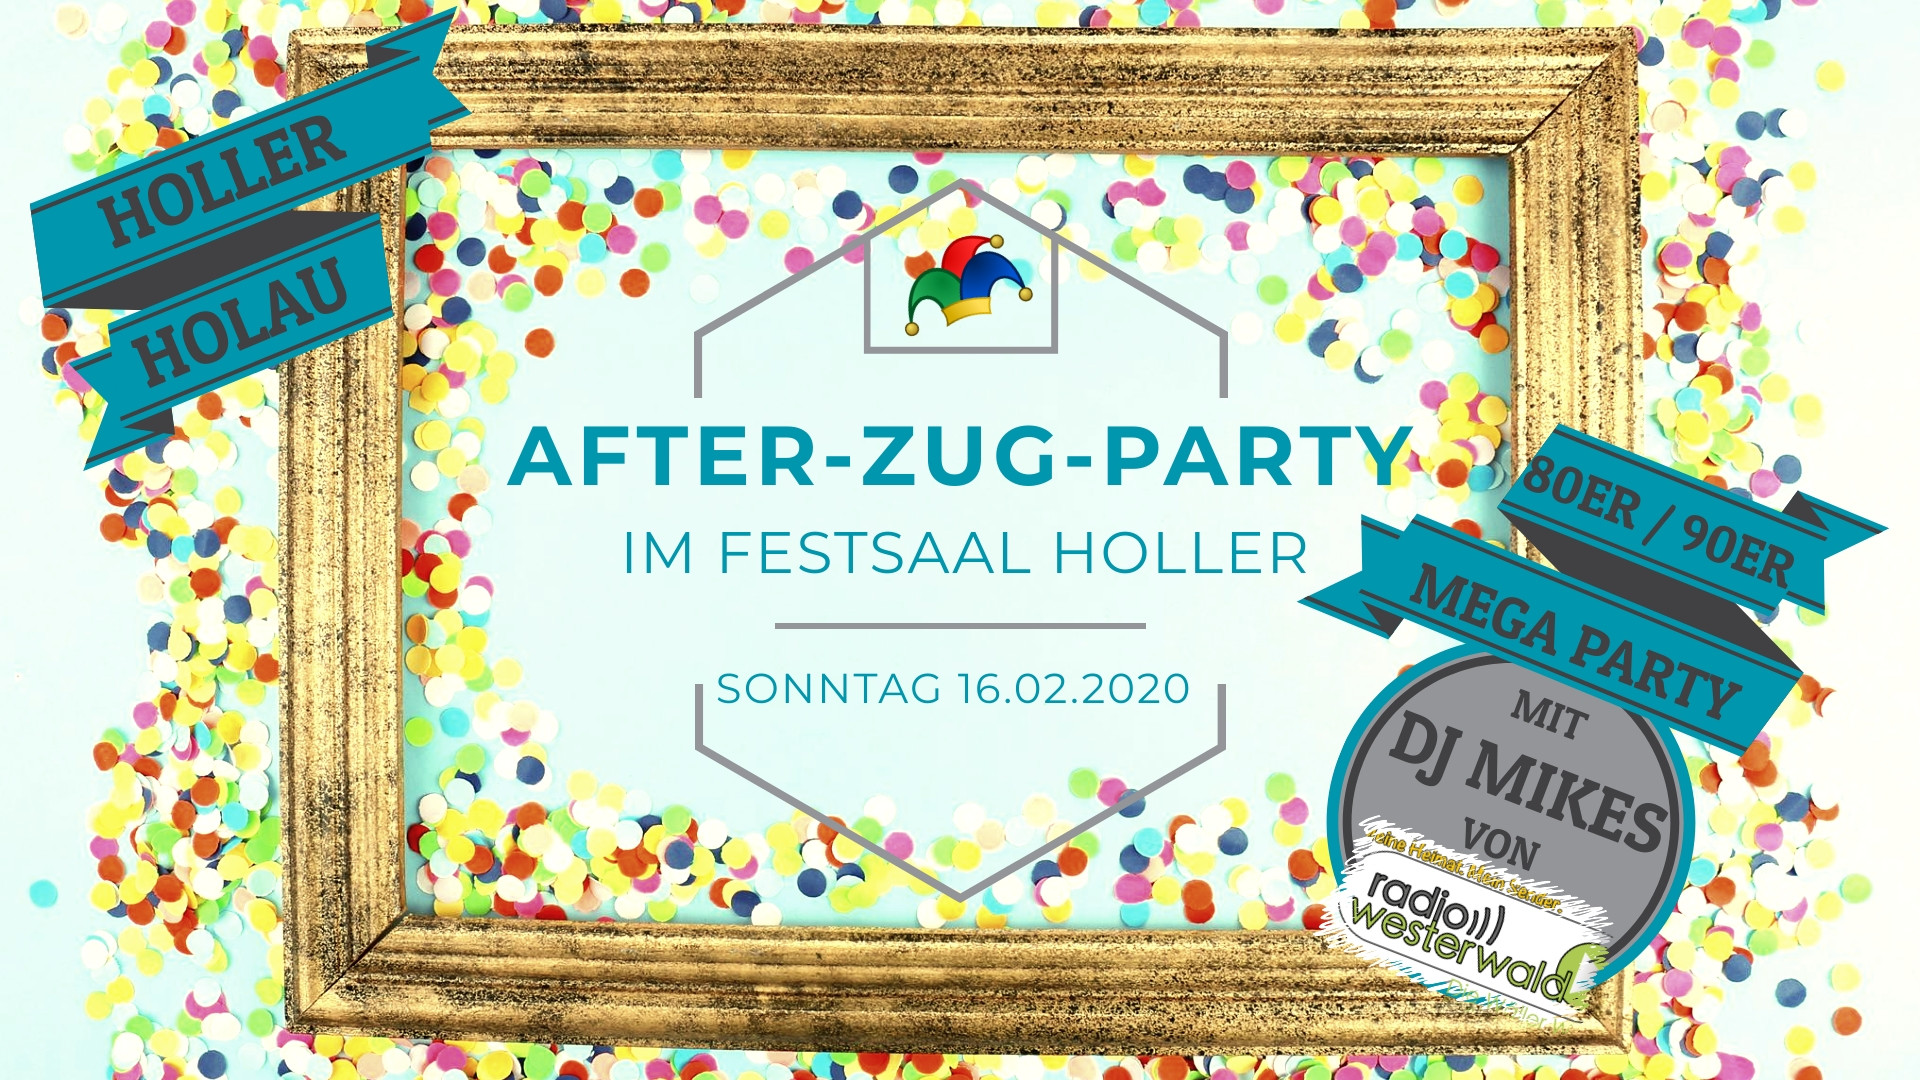 AFTER-ZUG-PARTY Holler 2020